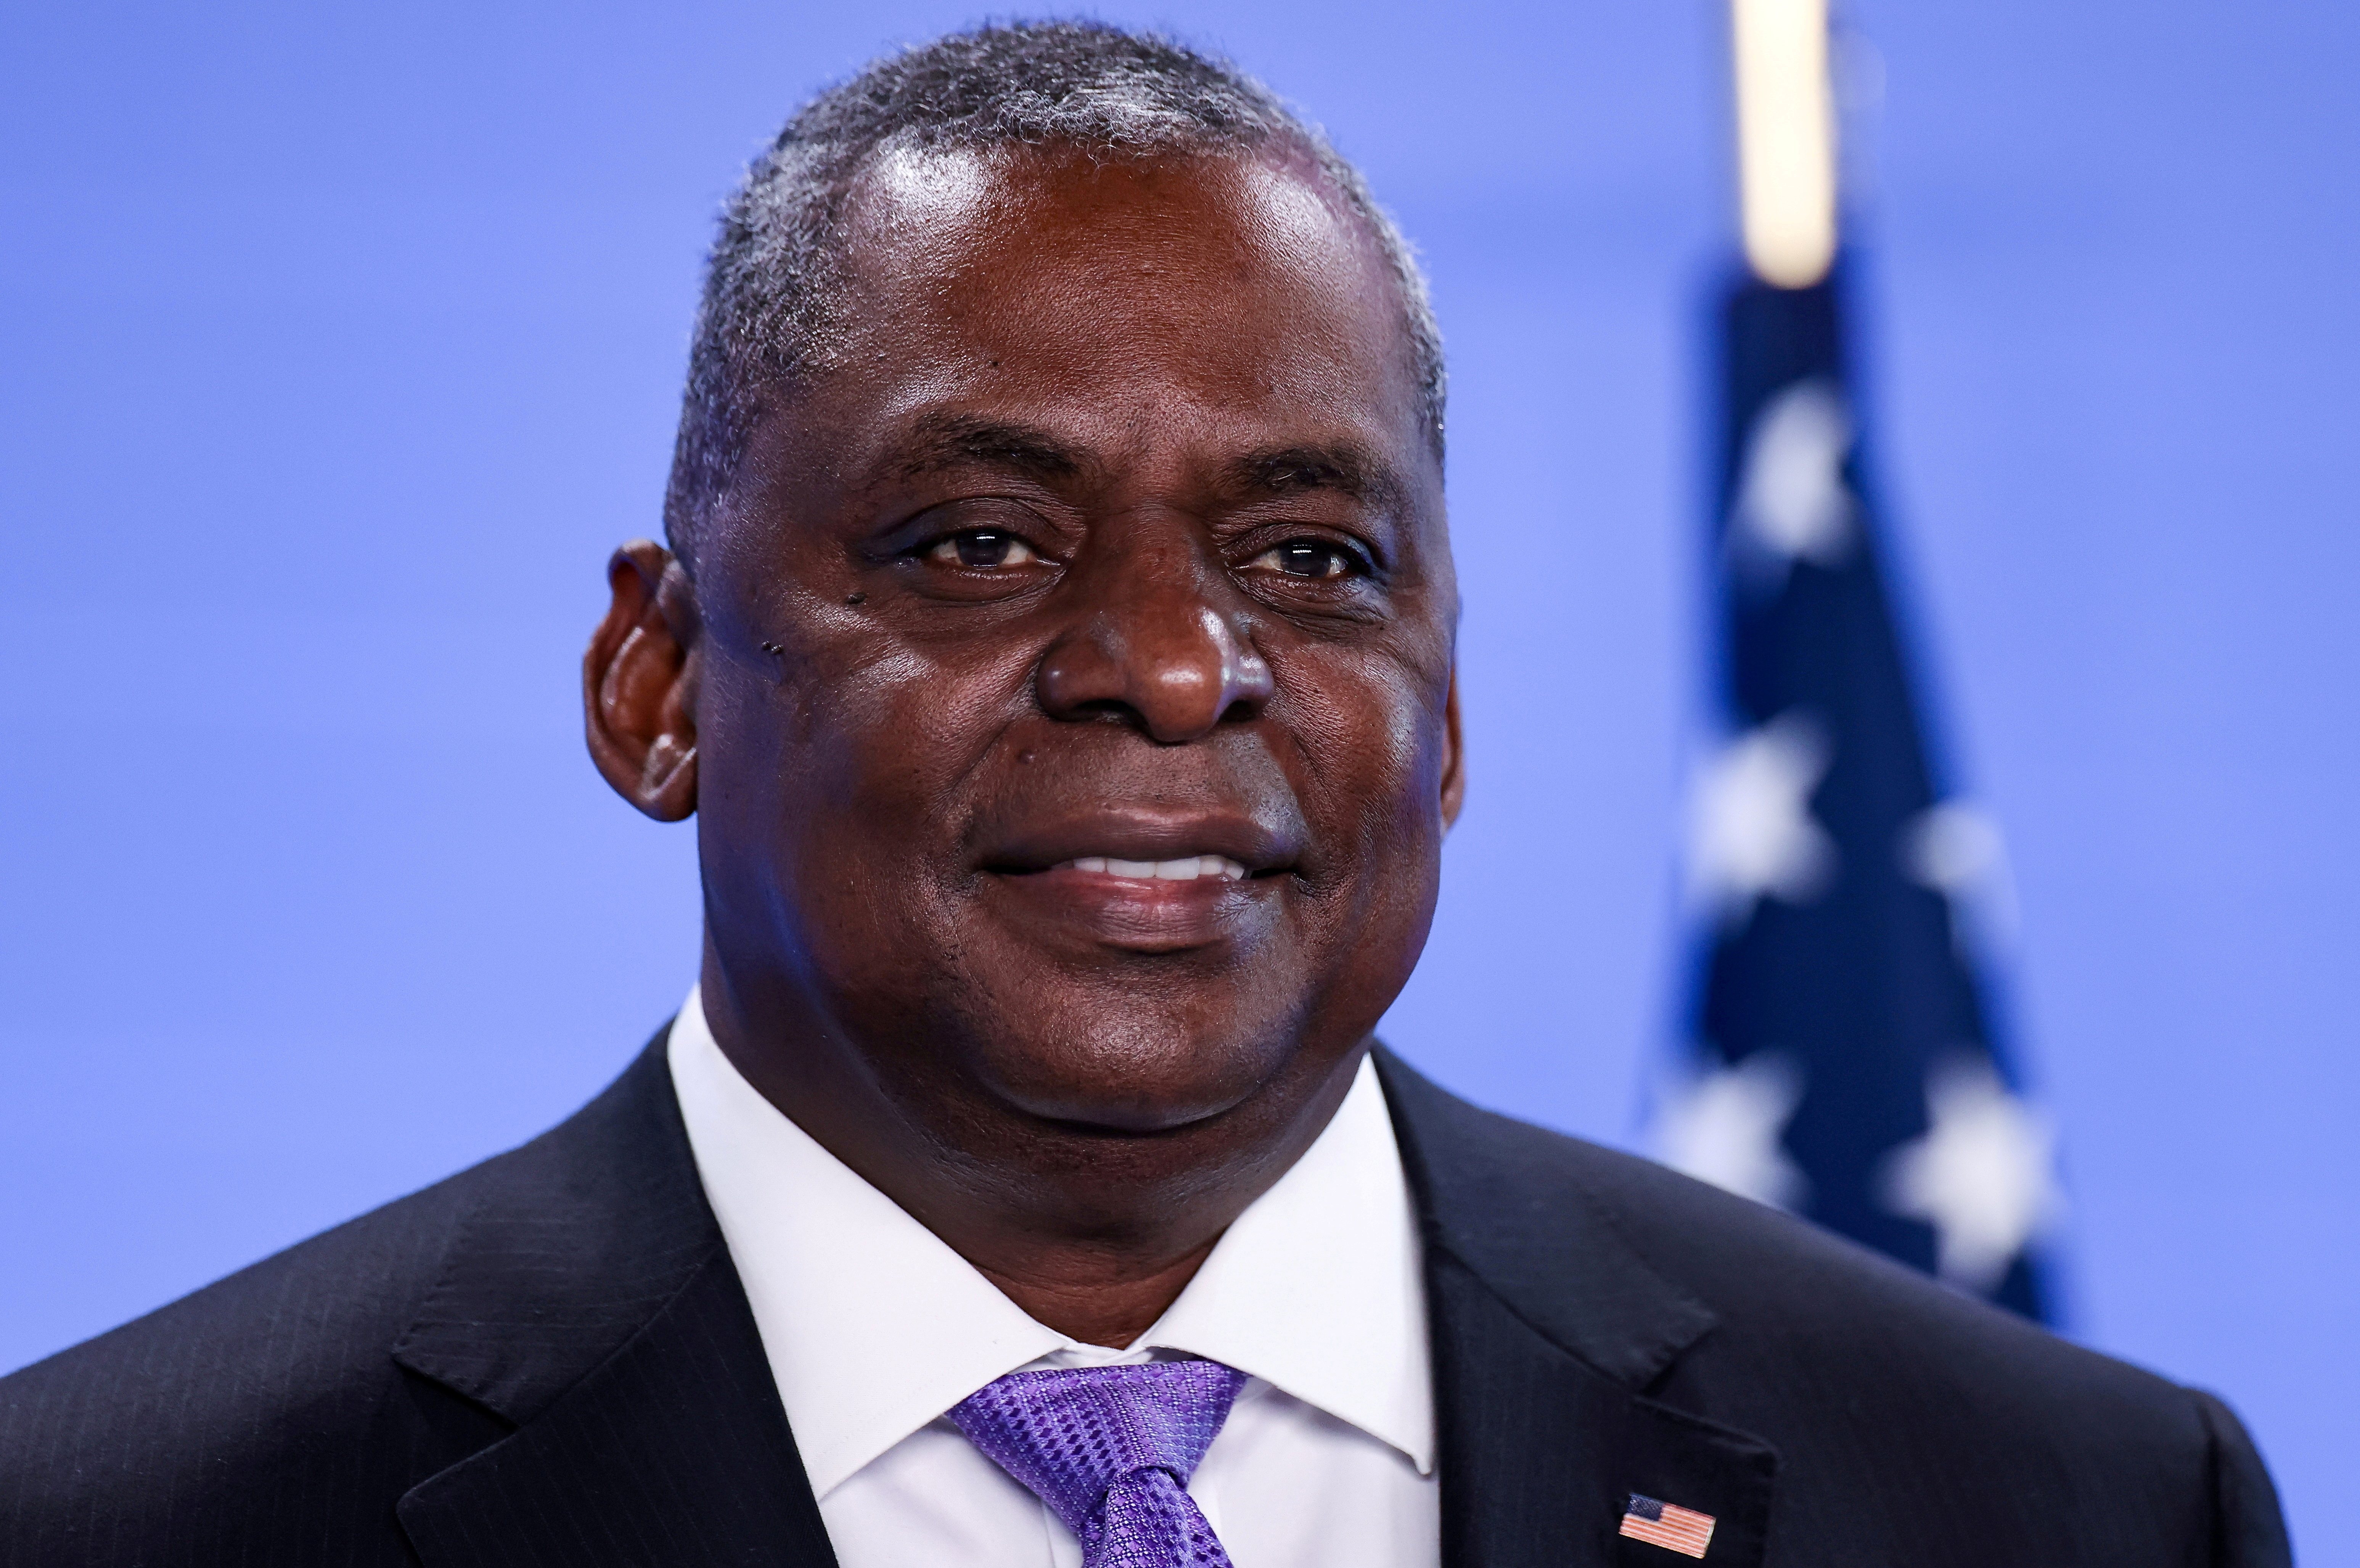 U.S. Defense Secretary Lloyd Austin poses as he arrives for a meeting of foreign ministers of the U.S., Britain, France and Germany on Afghanistan at NATO's headquarters in Brussels, Belgium, April 14, 2021. Kenzo Tribouillard/Pool via Reuters/File Photo